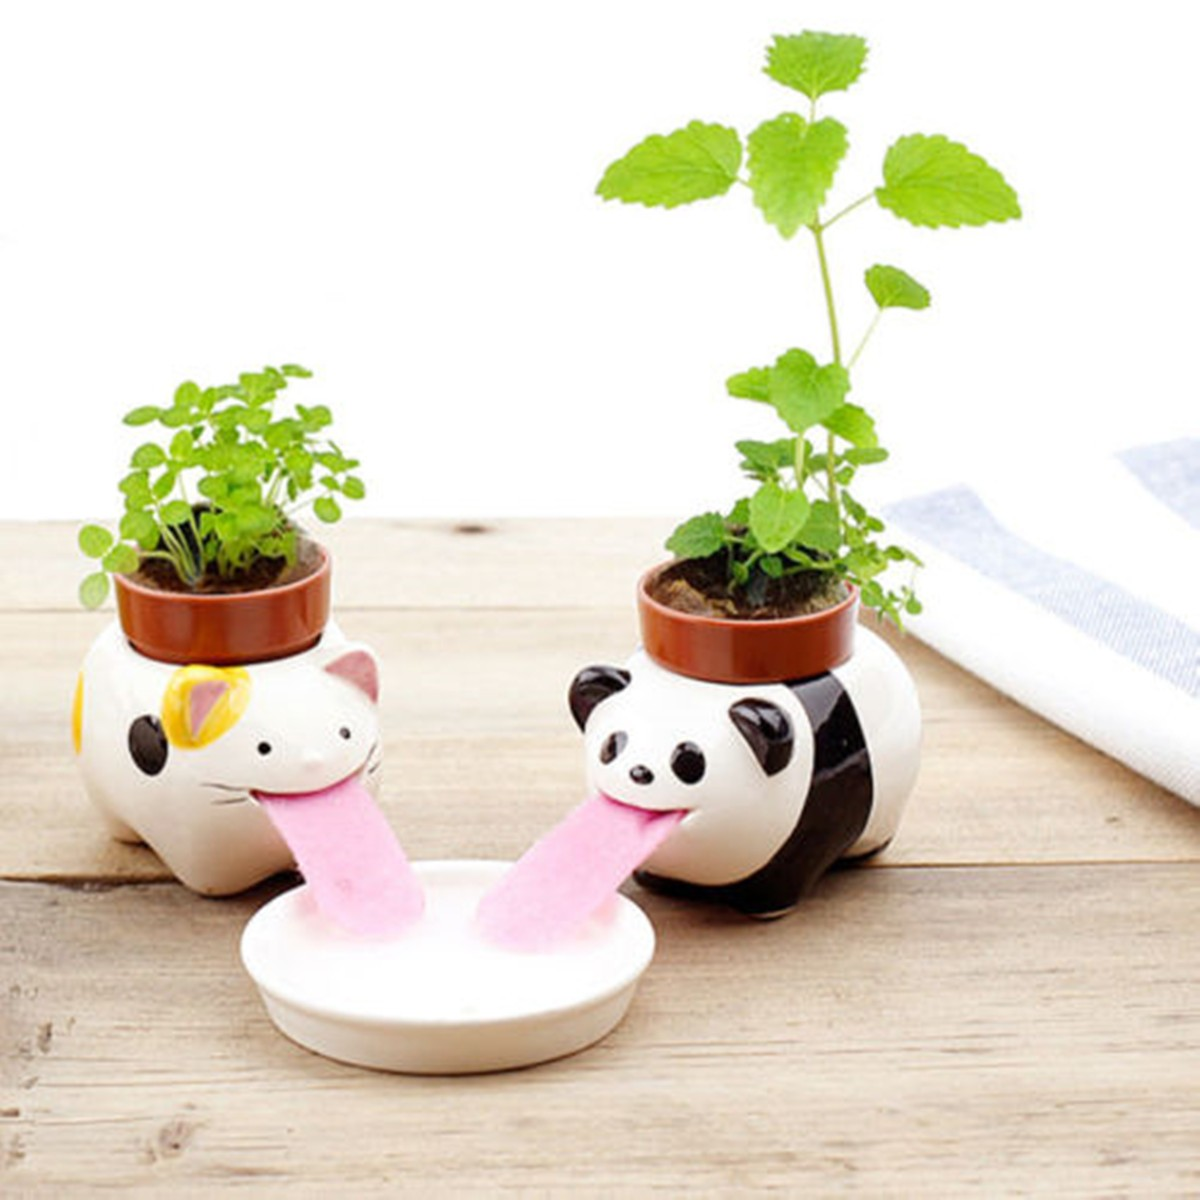 diy mini ceramic animal tougue self watering potted plant. Black Bedroom Furniture Sets. Home Design Ideas